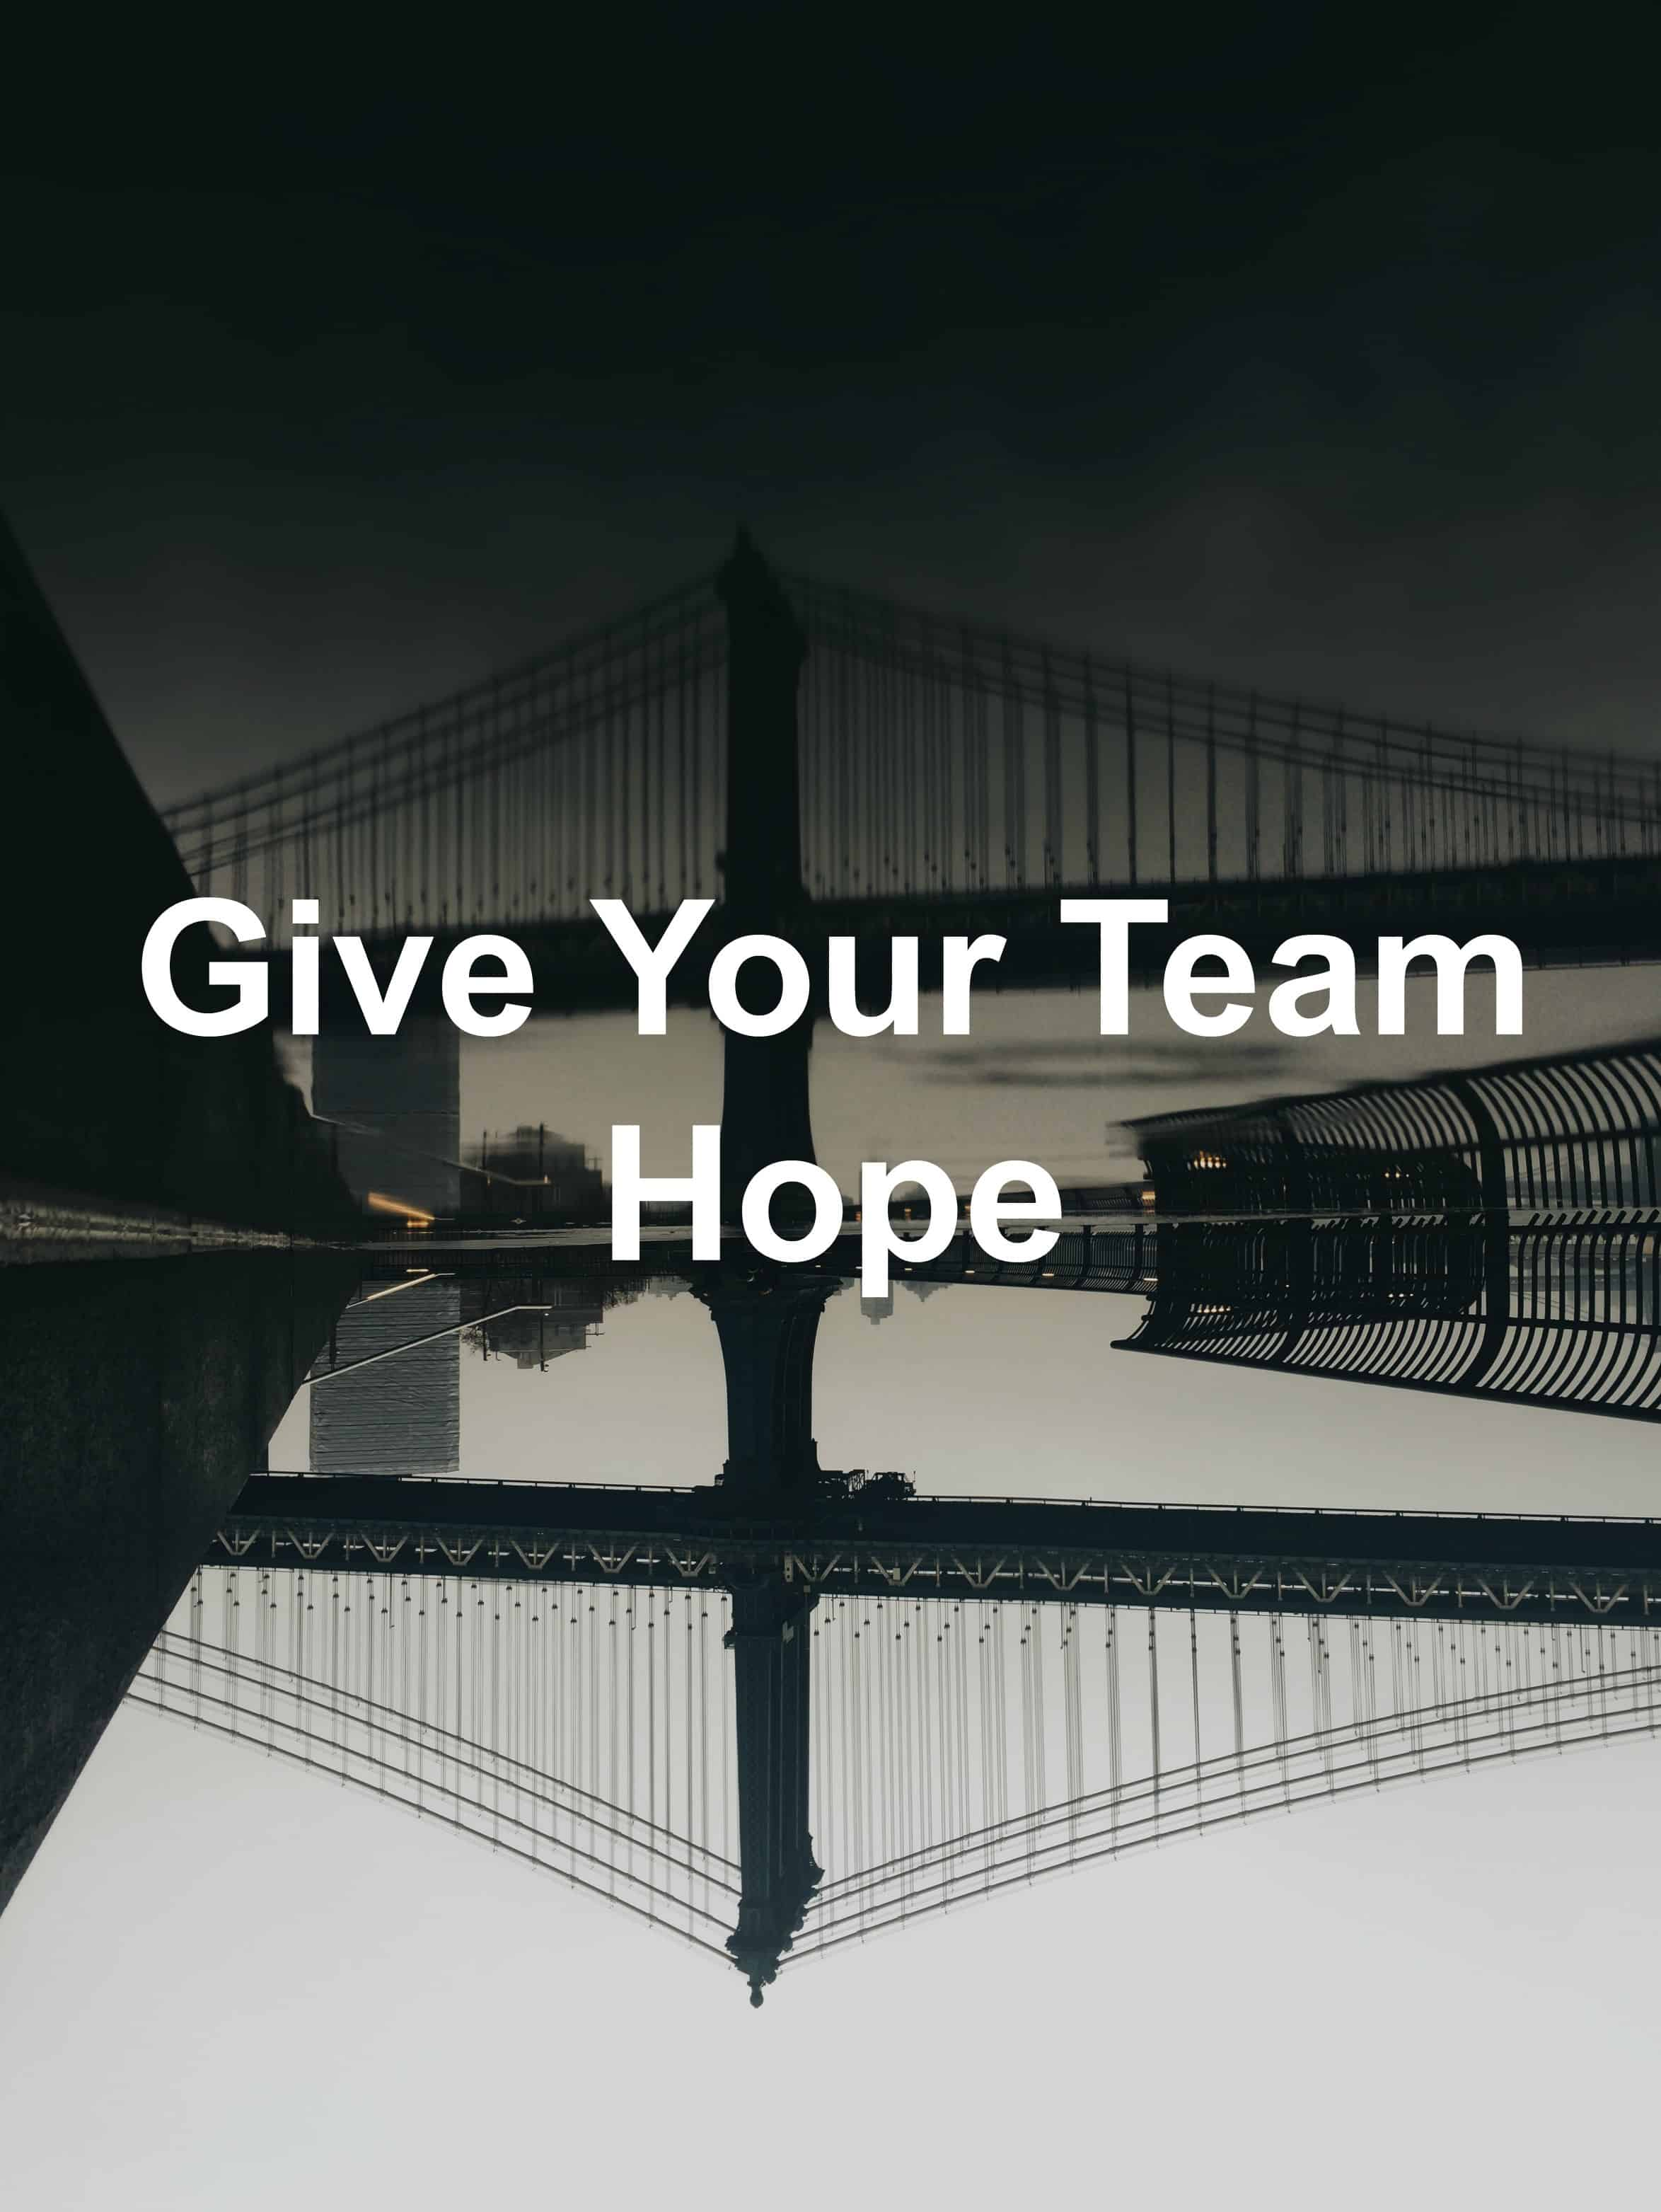 Your team needs hope. You can give them hope